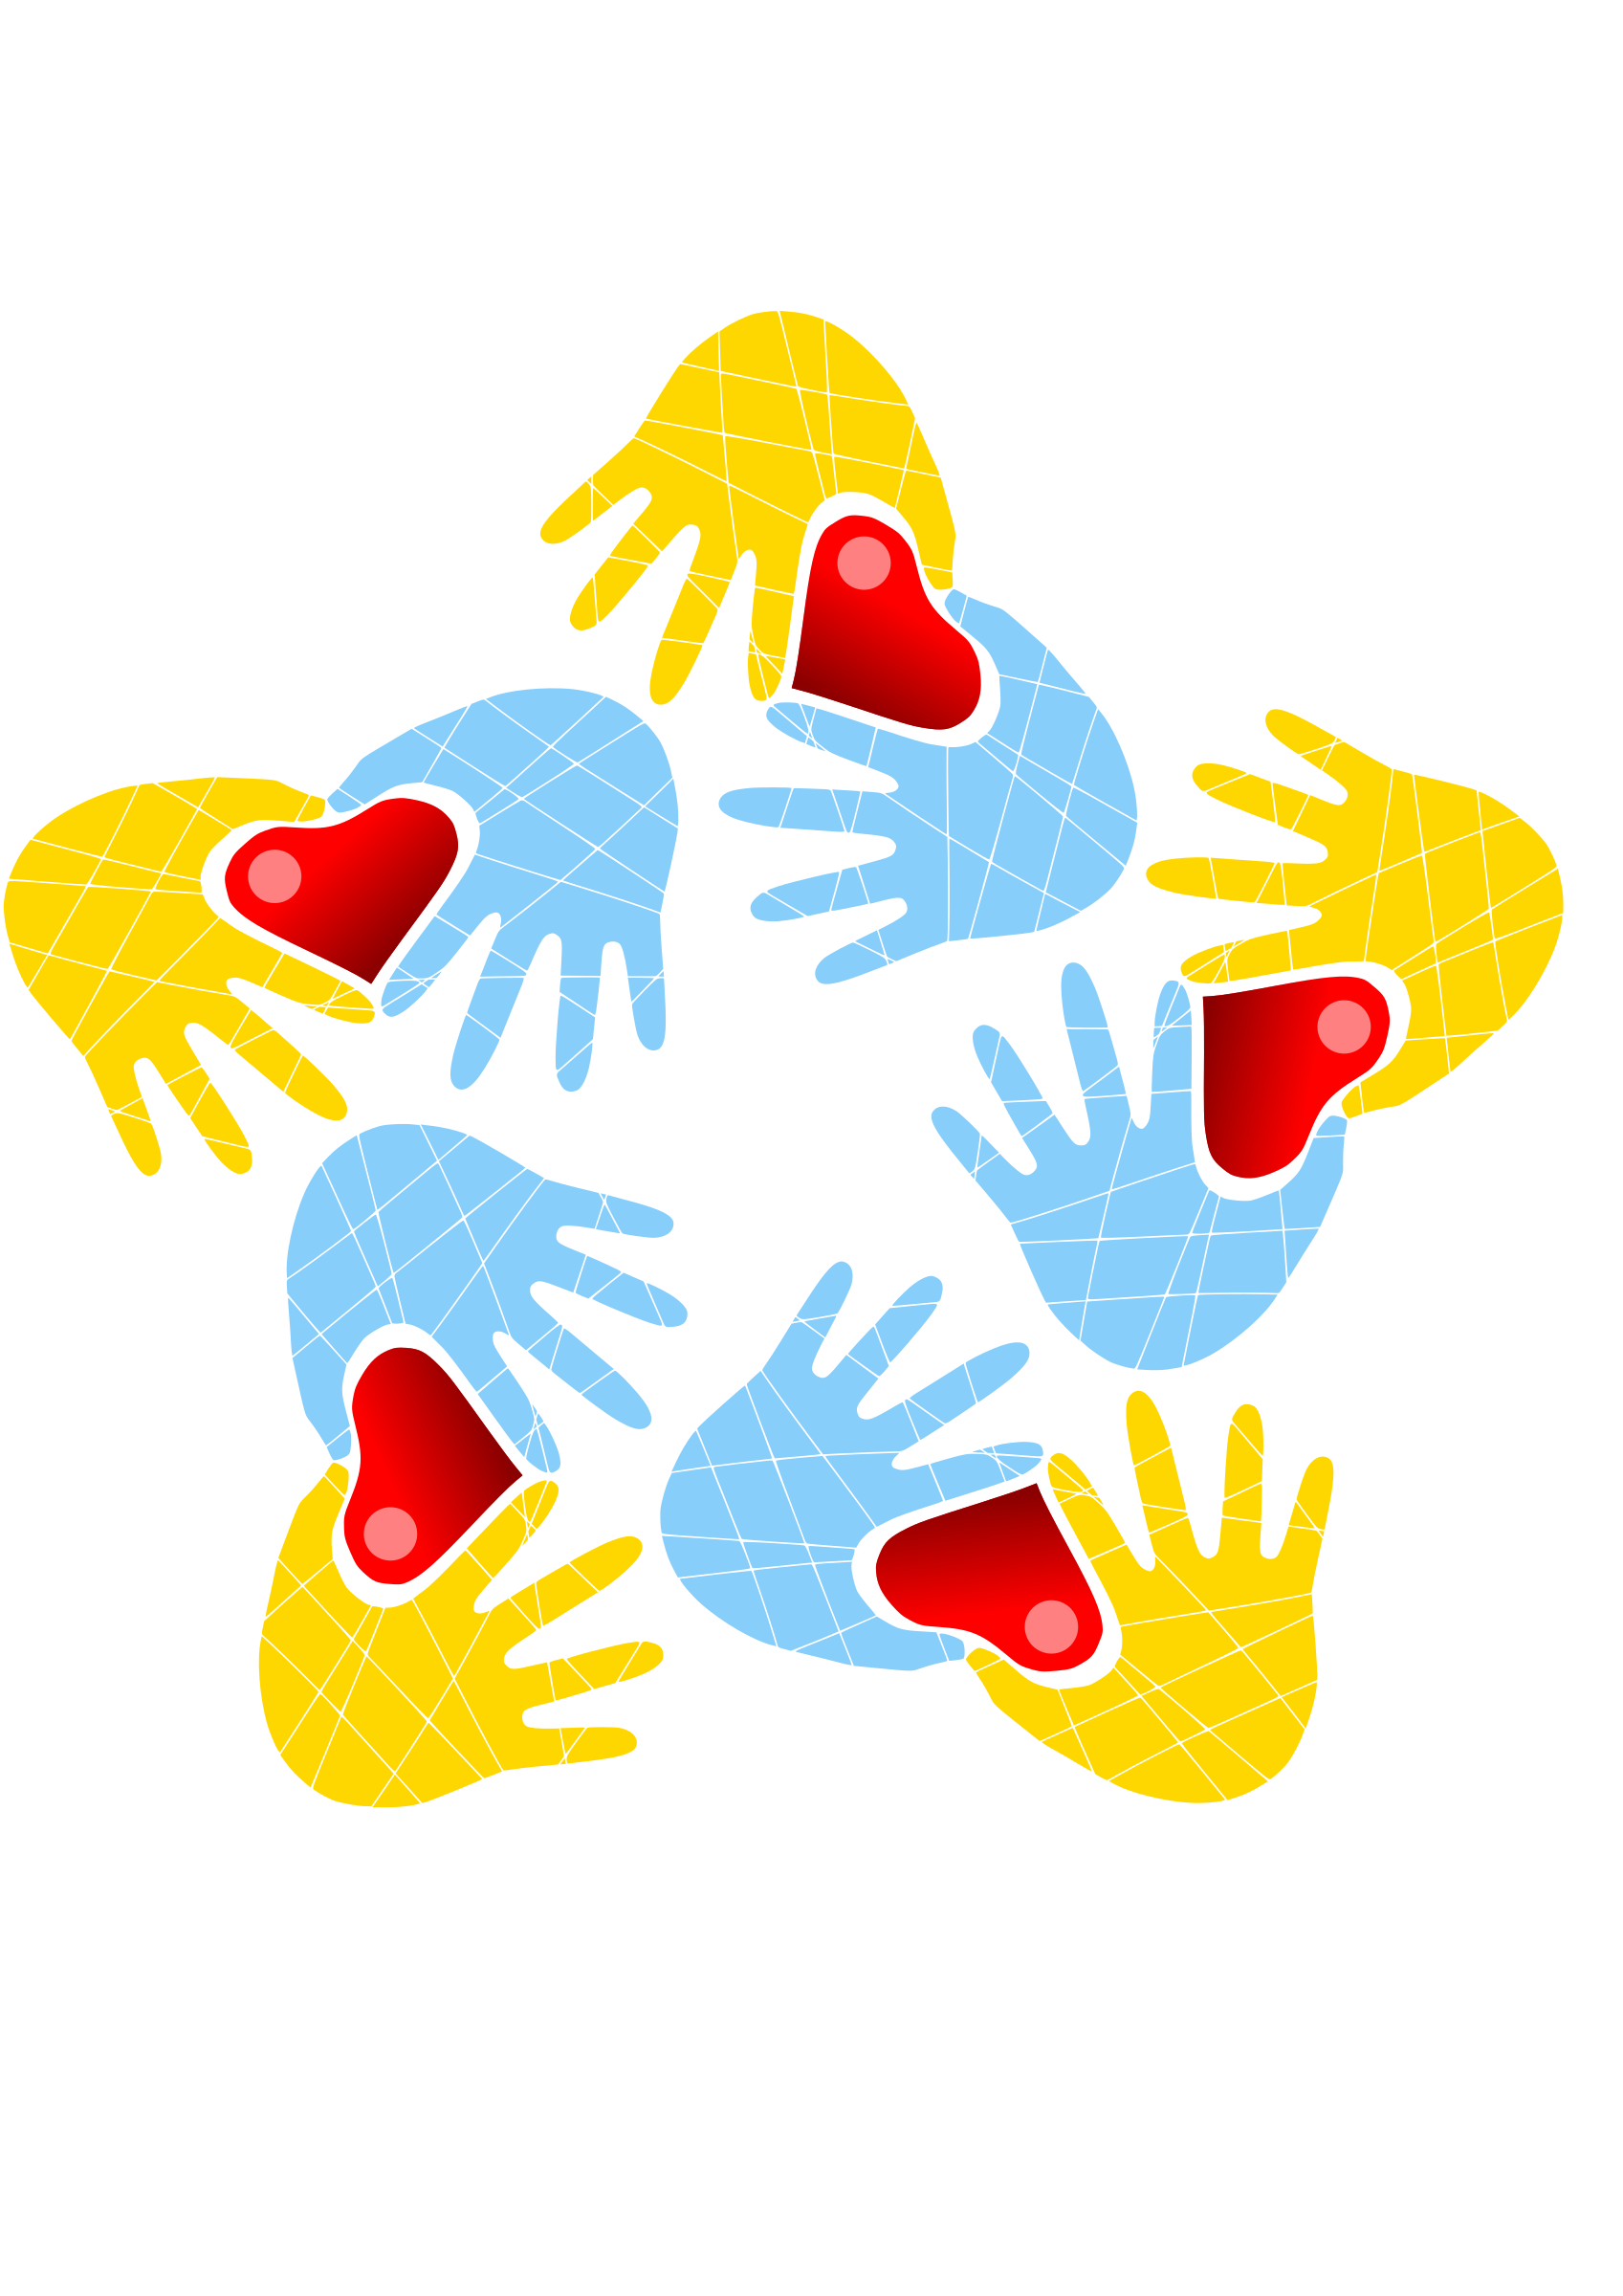 Hands and hearts - #request by Almeidah